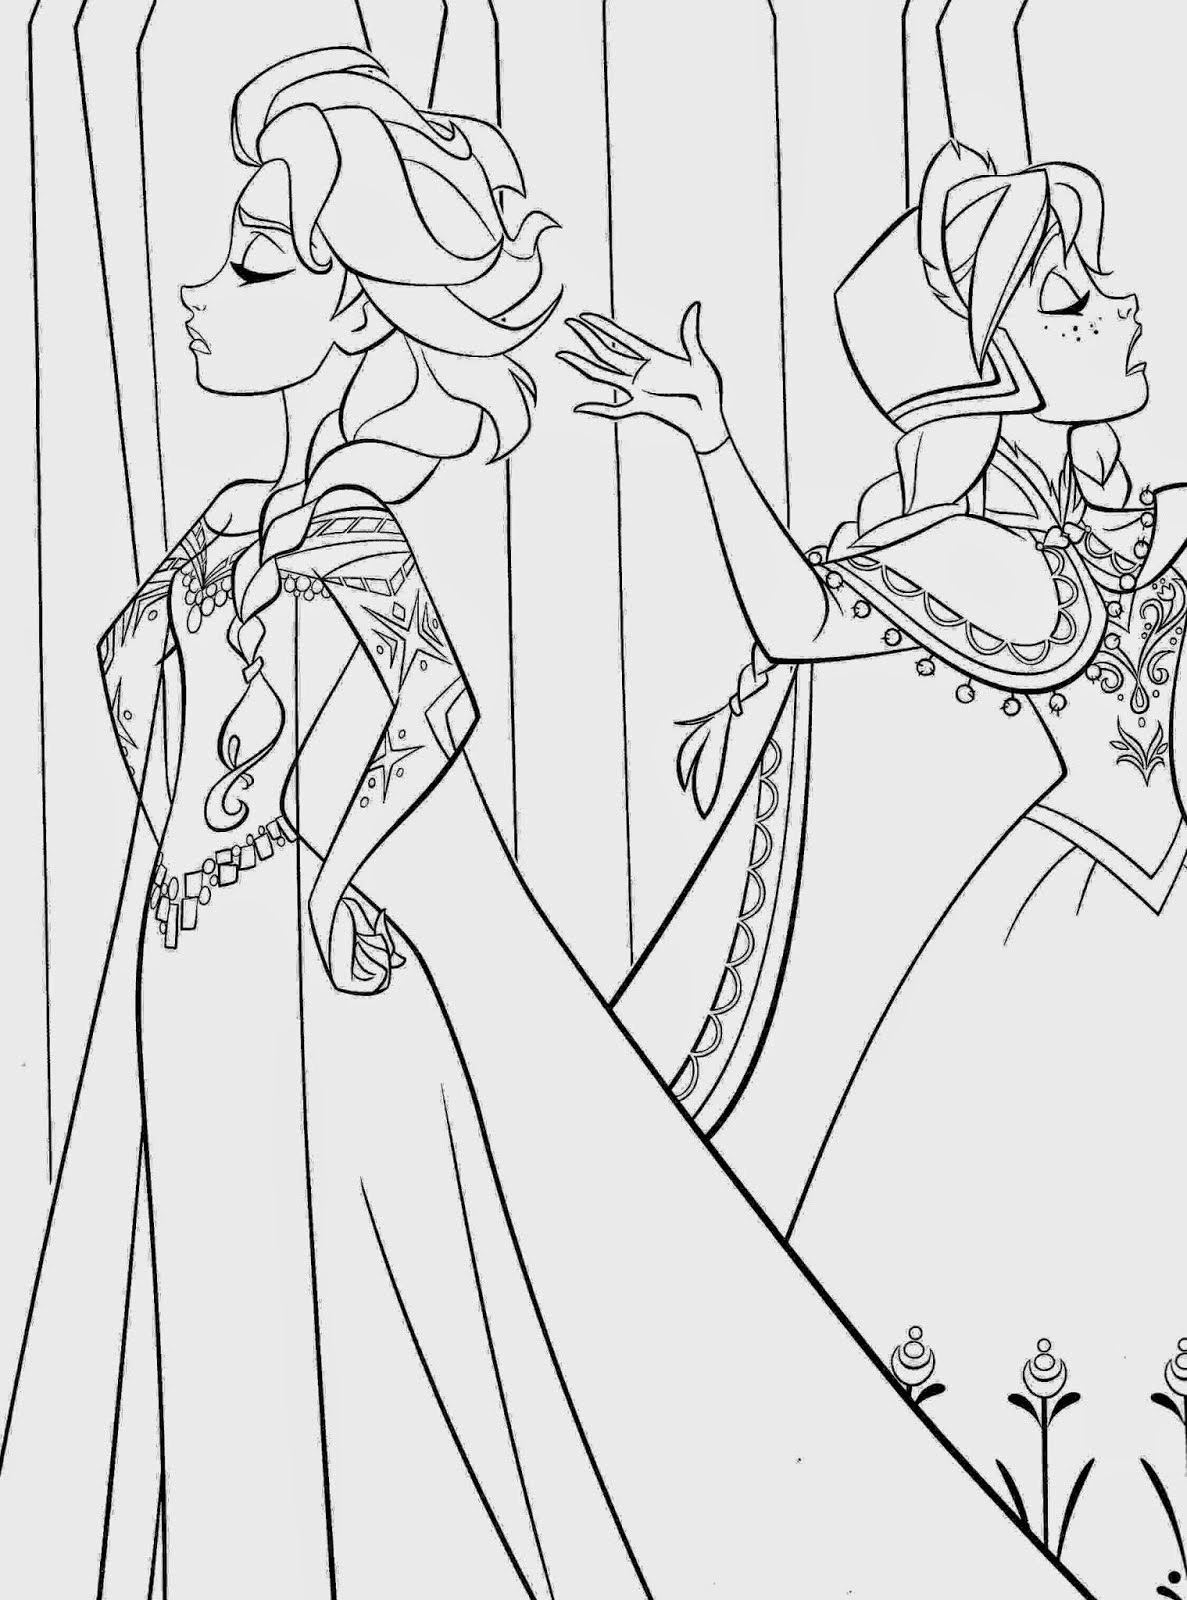 disney frozen coloring pages 15 beautiful disney frozen coloring pages free instant disney frozen coloring pages